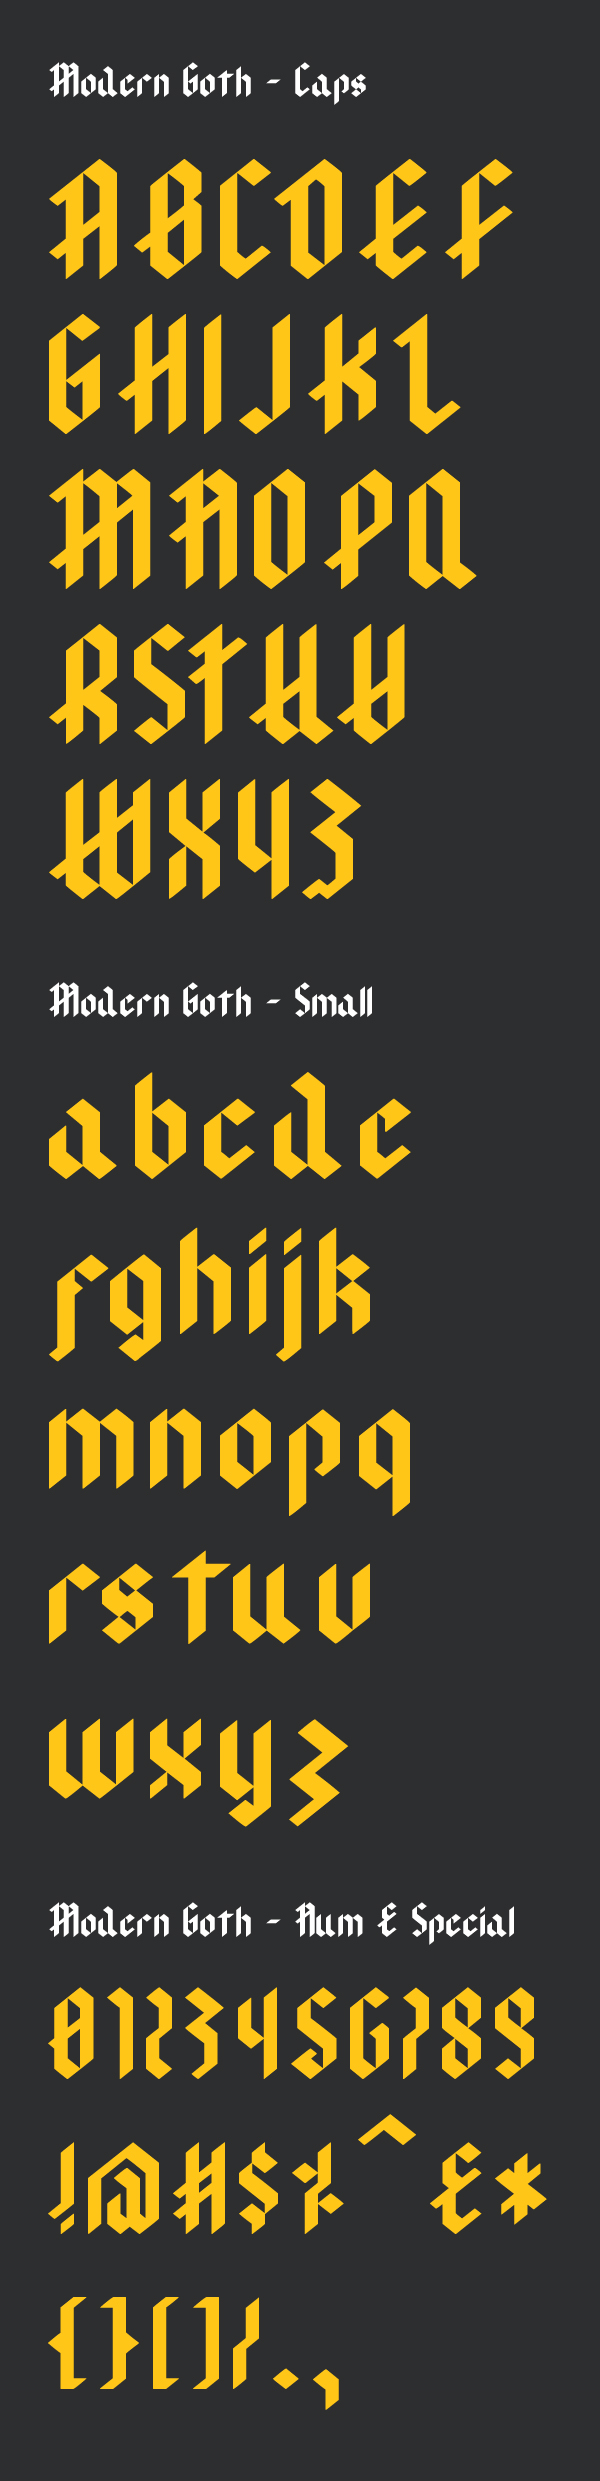 Modern Goth Font Letters